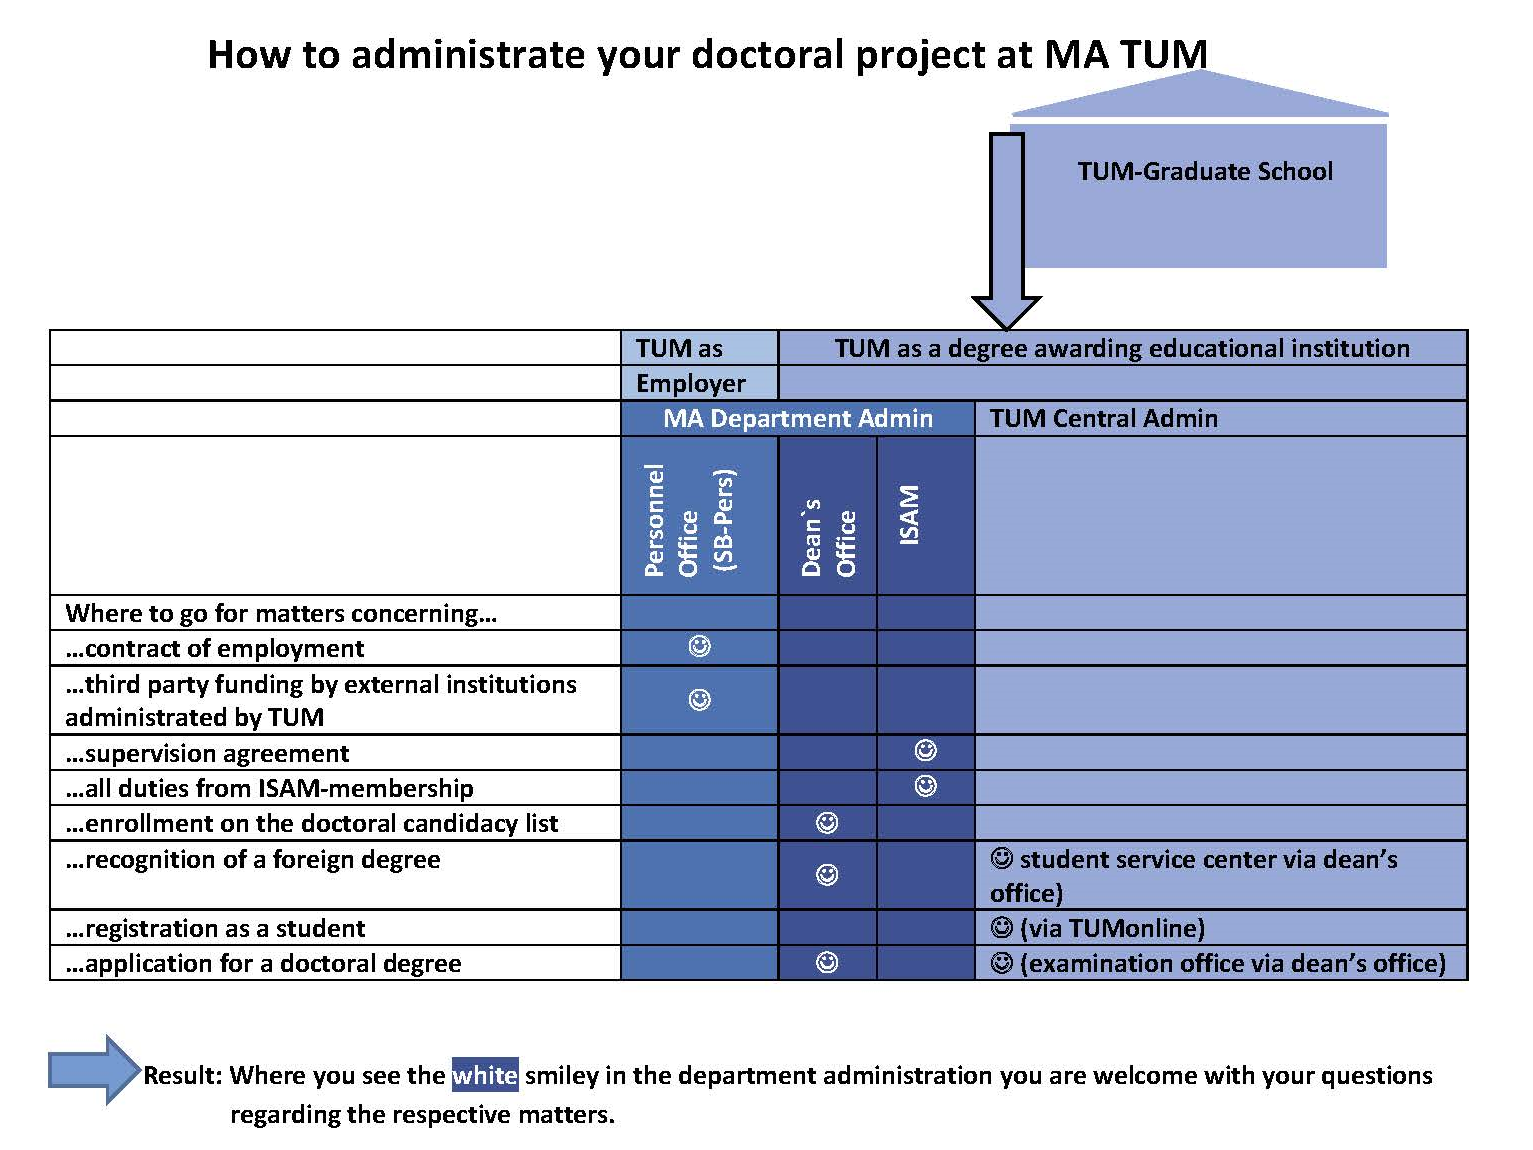 How to administrate your doctoral project at TUM mathematics